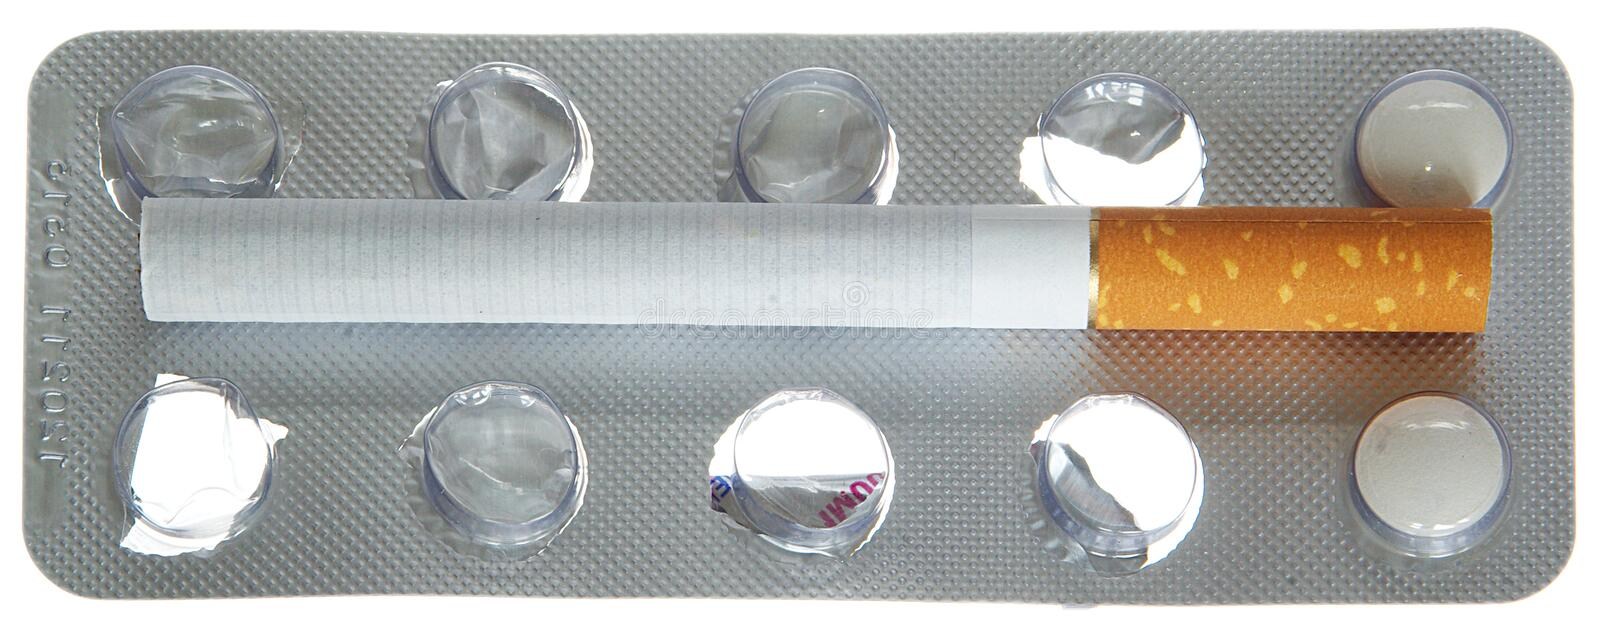 Tablets vs cigarettes. Pack of tablets with cigarets stock image